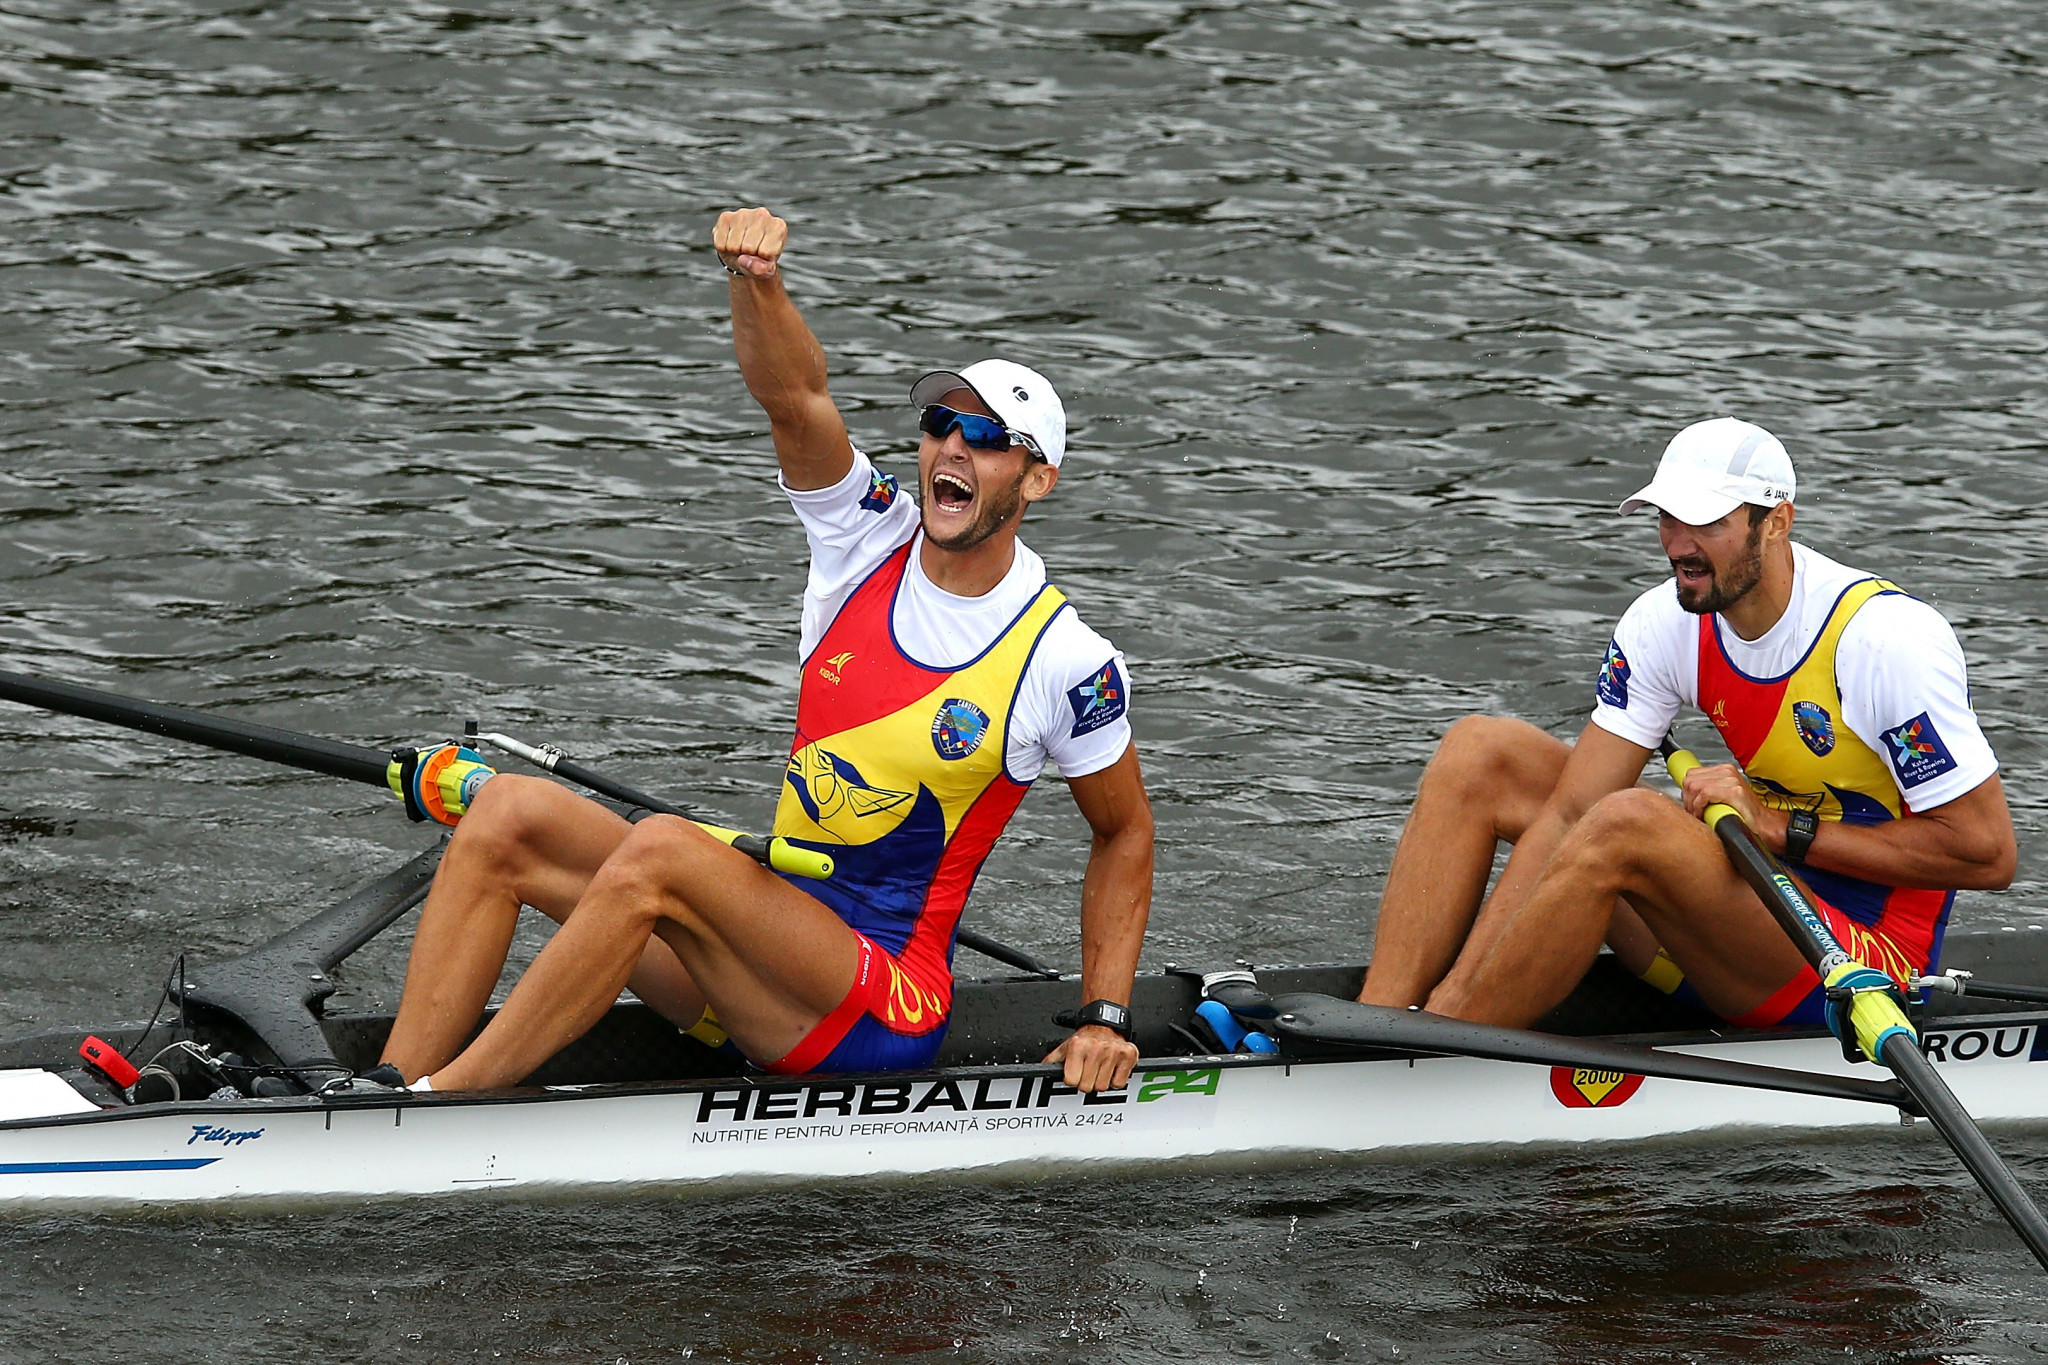 Ciprian Tudosa and Marius-Vasile Cozmiuc clinched the men's pairs title at the European Rowing Championships ©Getty Images